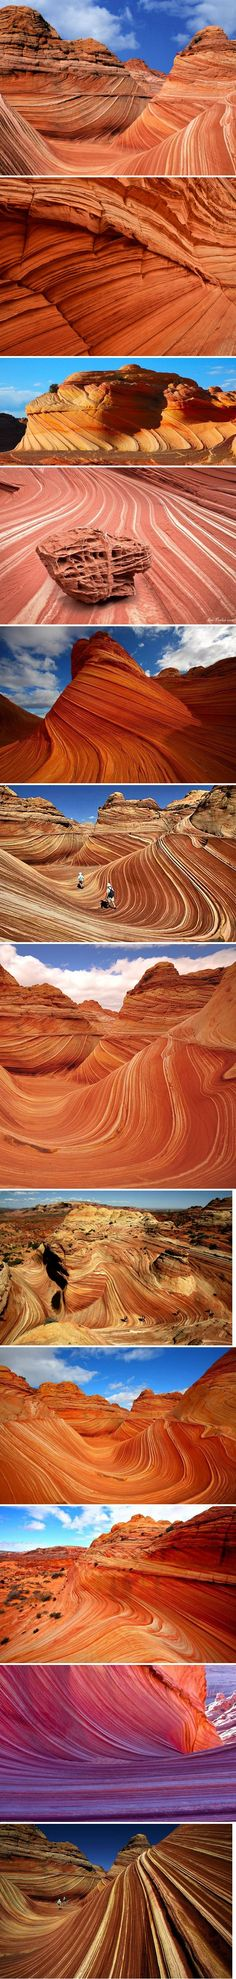 The Wave is a sandstone rock formation located in the United States of America near the Arizona and Utah border on the slopes of the Coyote Buttes, in the Paria Canyon-Vermilion Cliffs Wilderness, on the Colorado Plateau. It is famous among hikers and photographers for its colorful, undulating forms, and the rugged, trackless hike required to reach it.